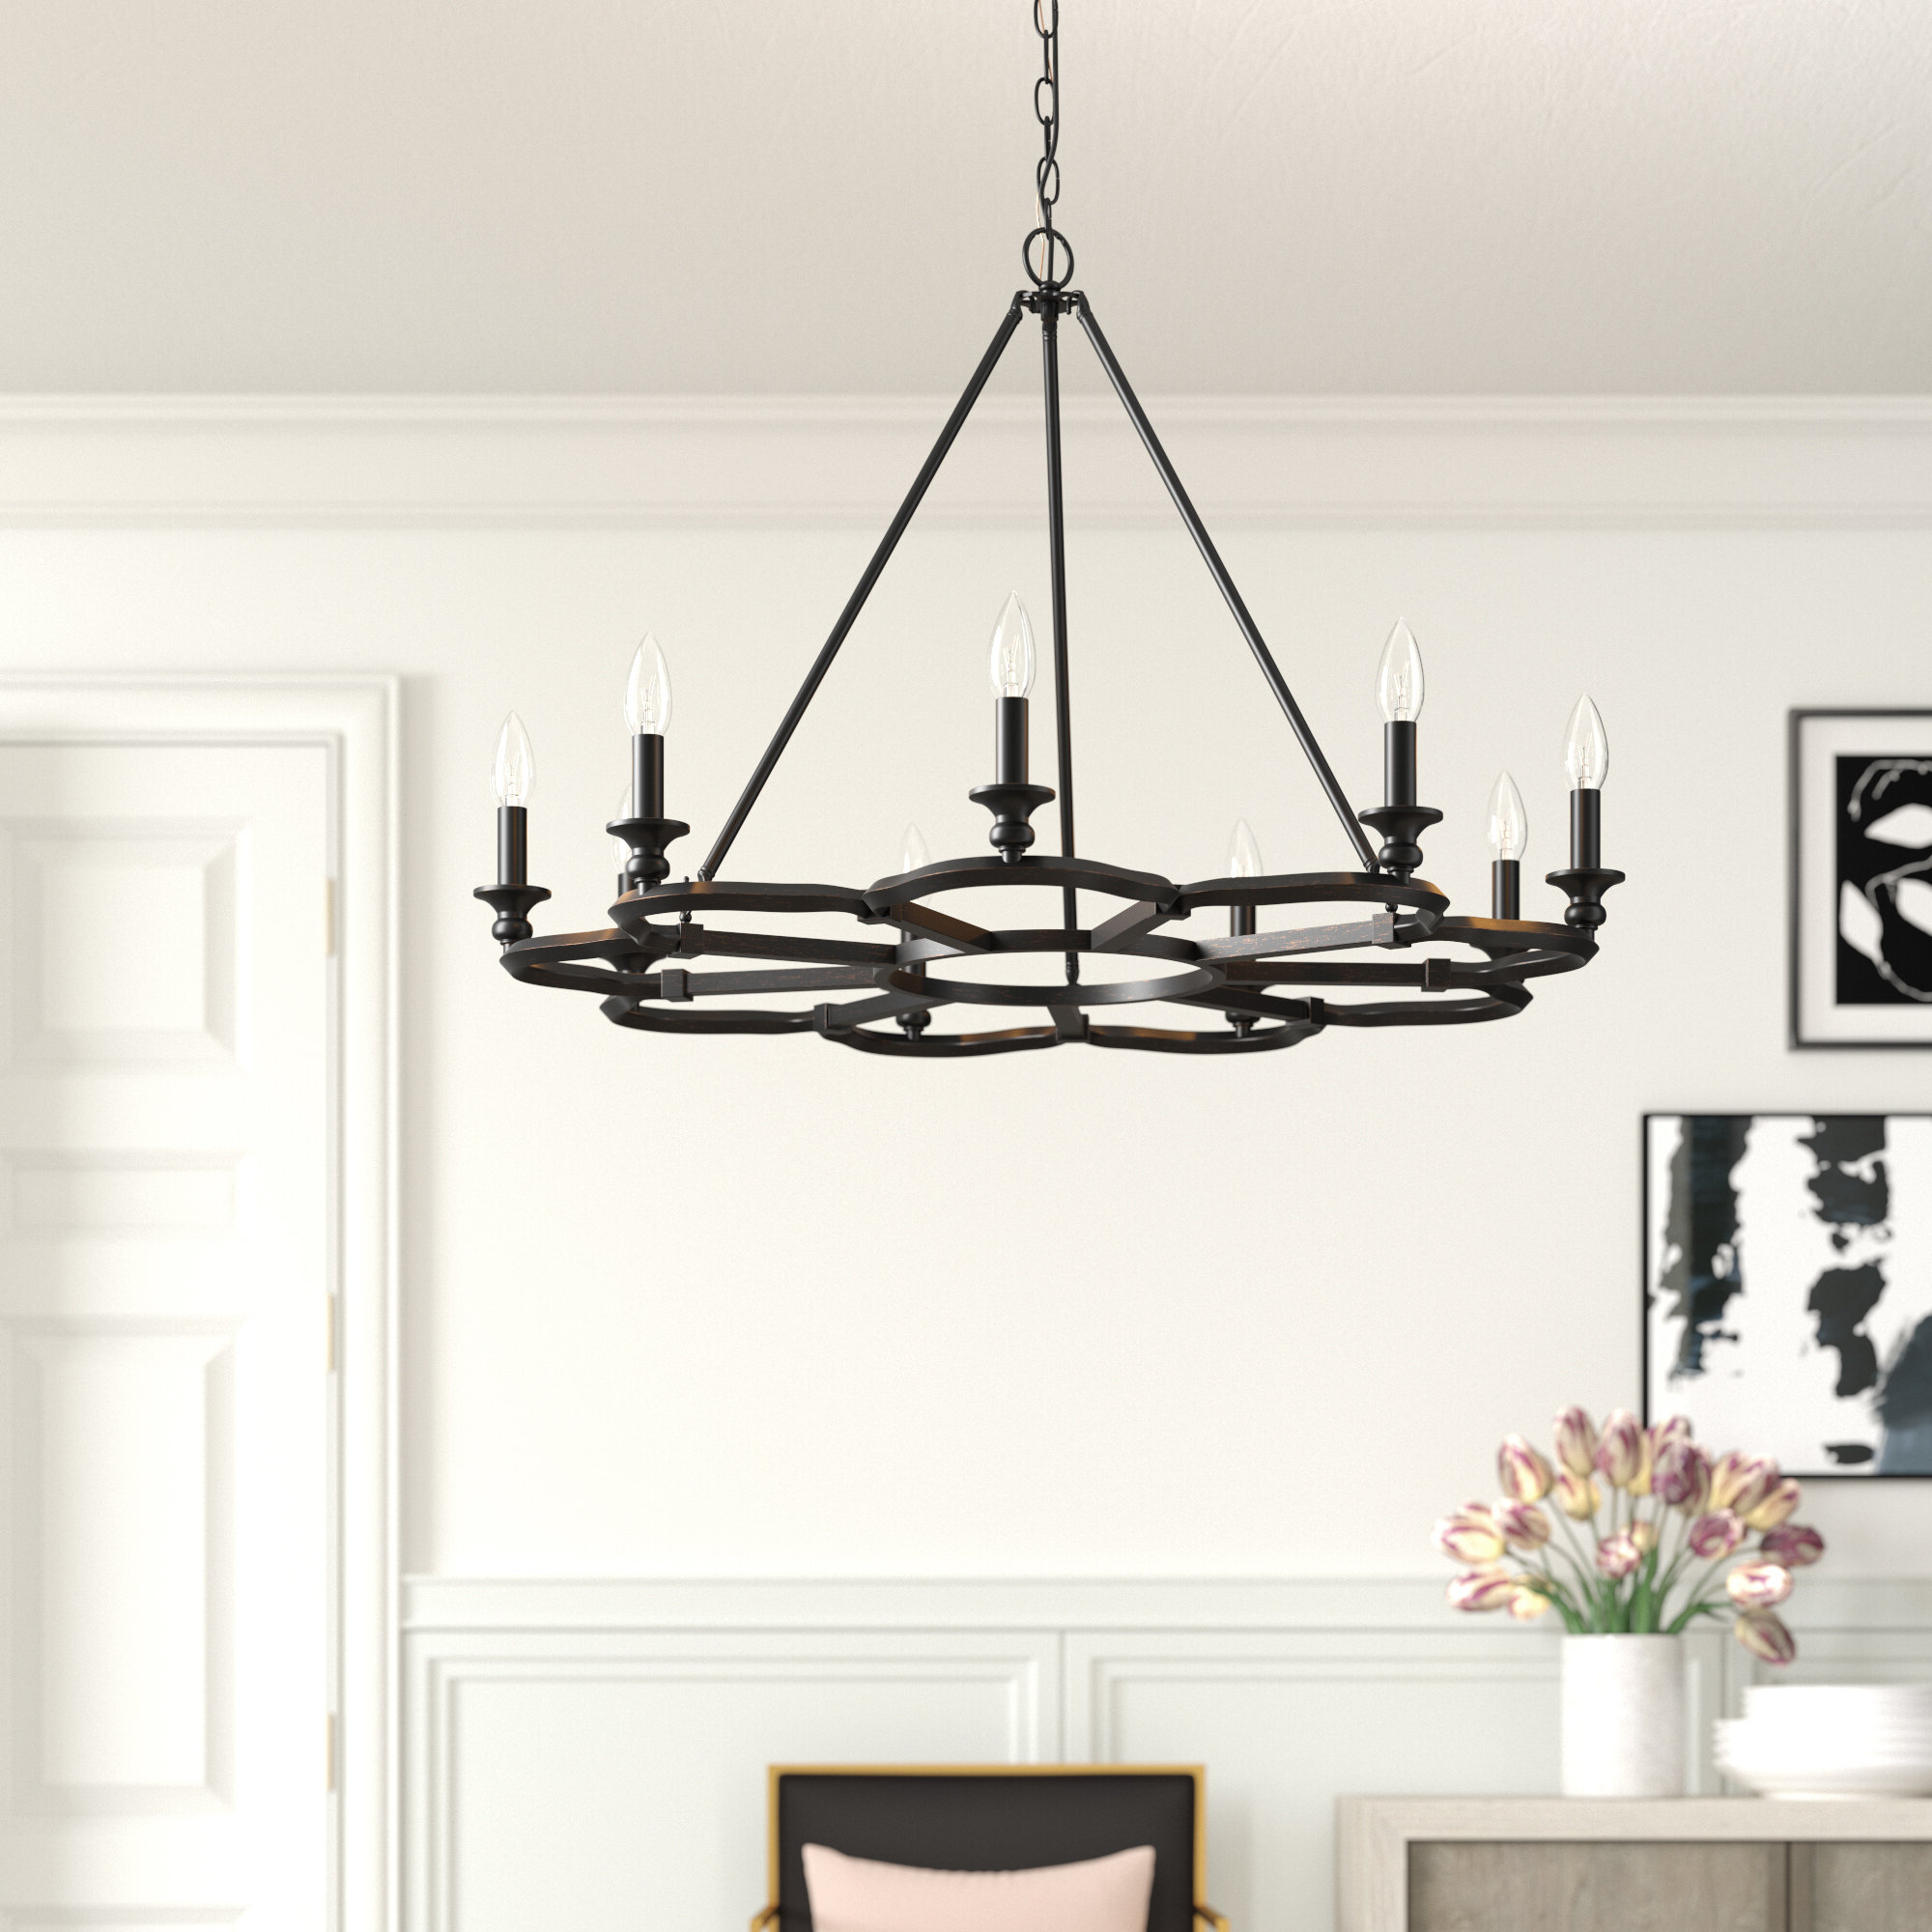 Jae 9 Light Wagon Wheel Chandelier Pertaining To 2019 Giverny 9 Light Candle Style Chandeliers (View 11 of 20)